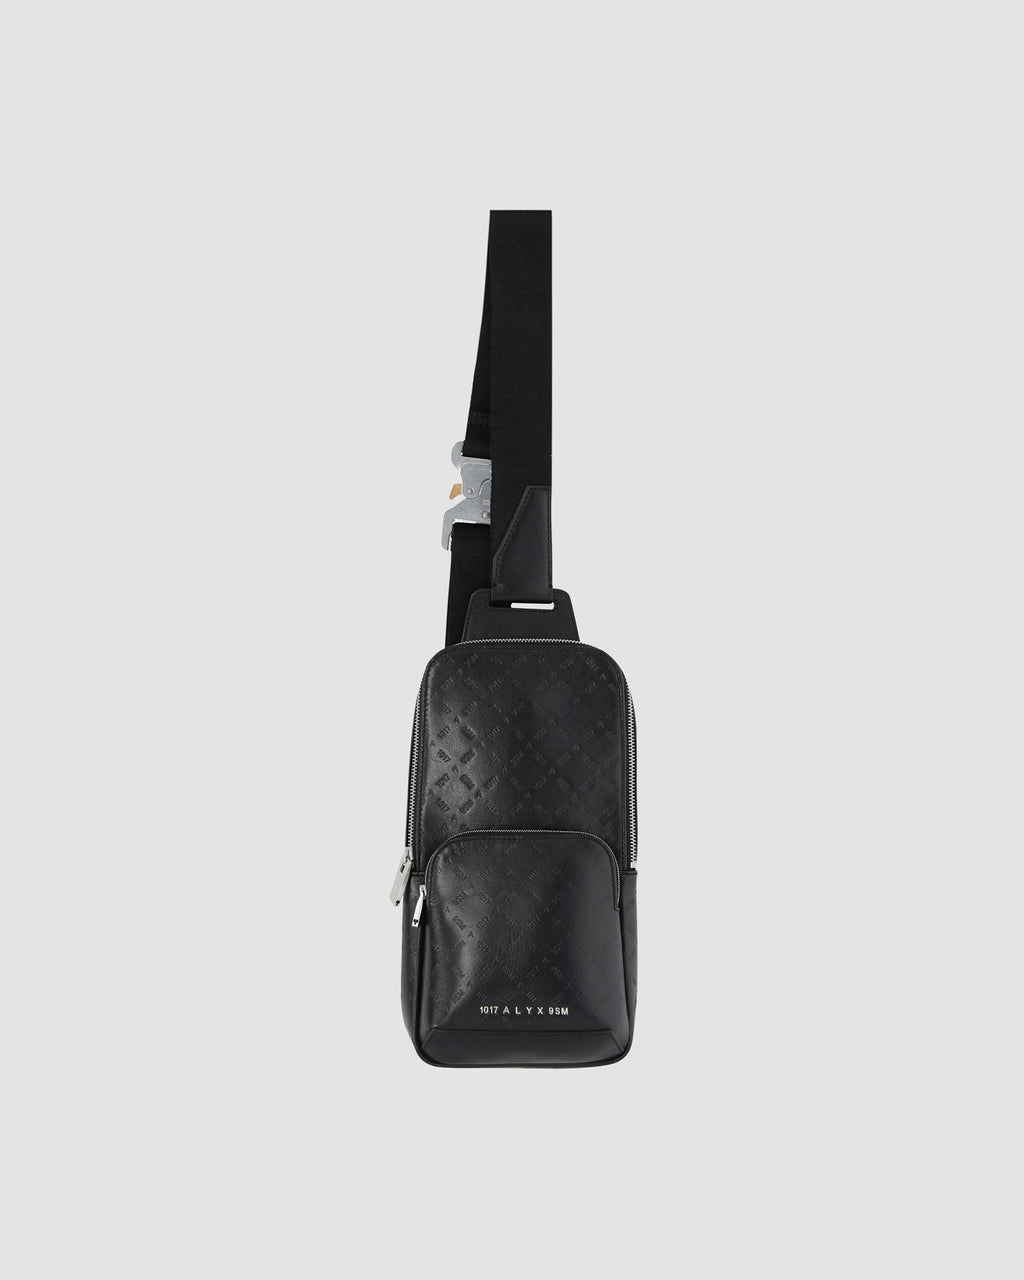 1017 ALYX 9SM | CROSSBODY BAG | Backpack | Accessories, BACKPACKS, Bags, BLACK, Google Shopping, Man, S20, SS20, UNISEX, Woman